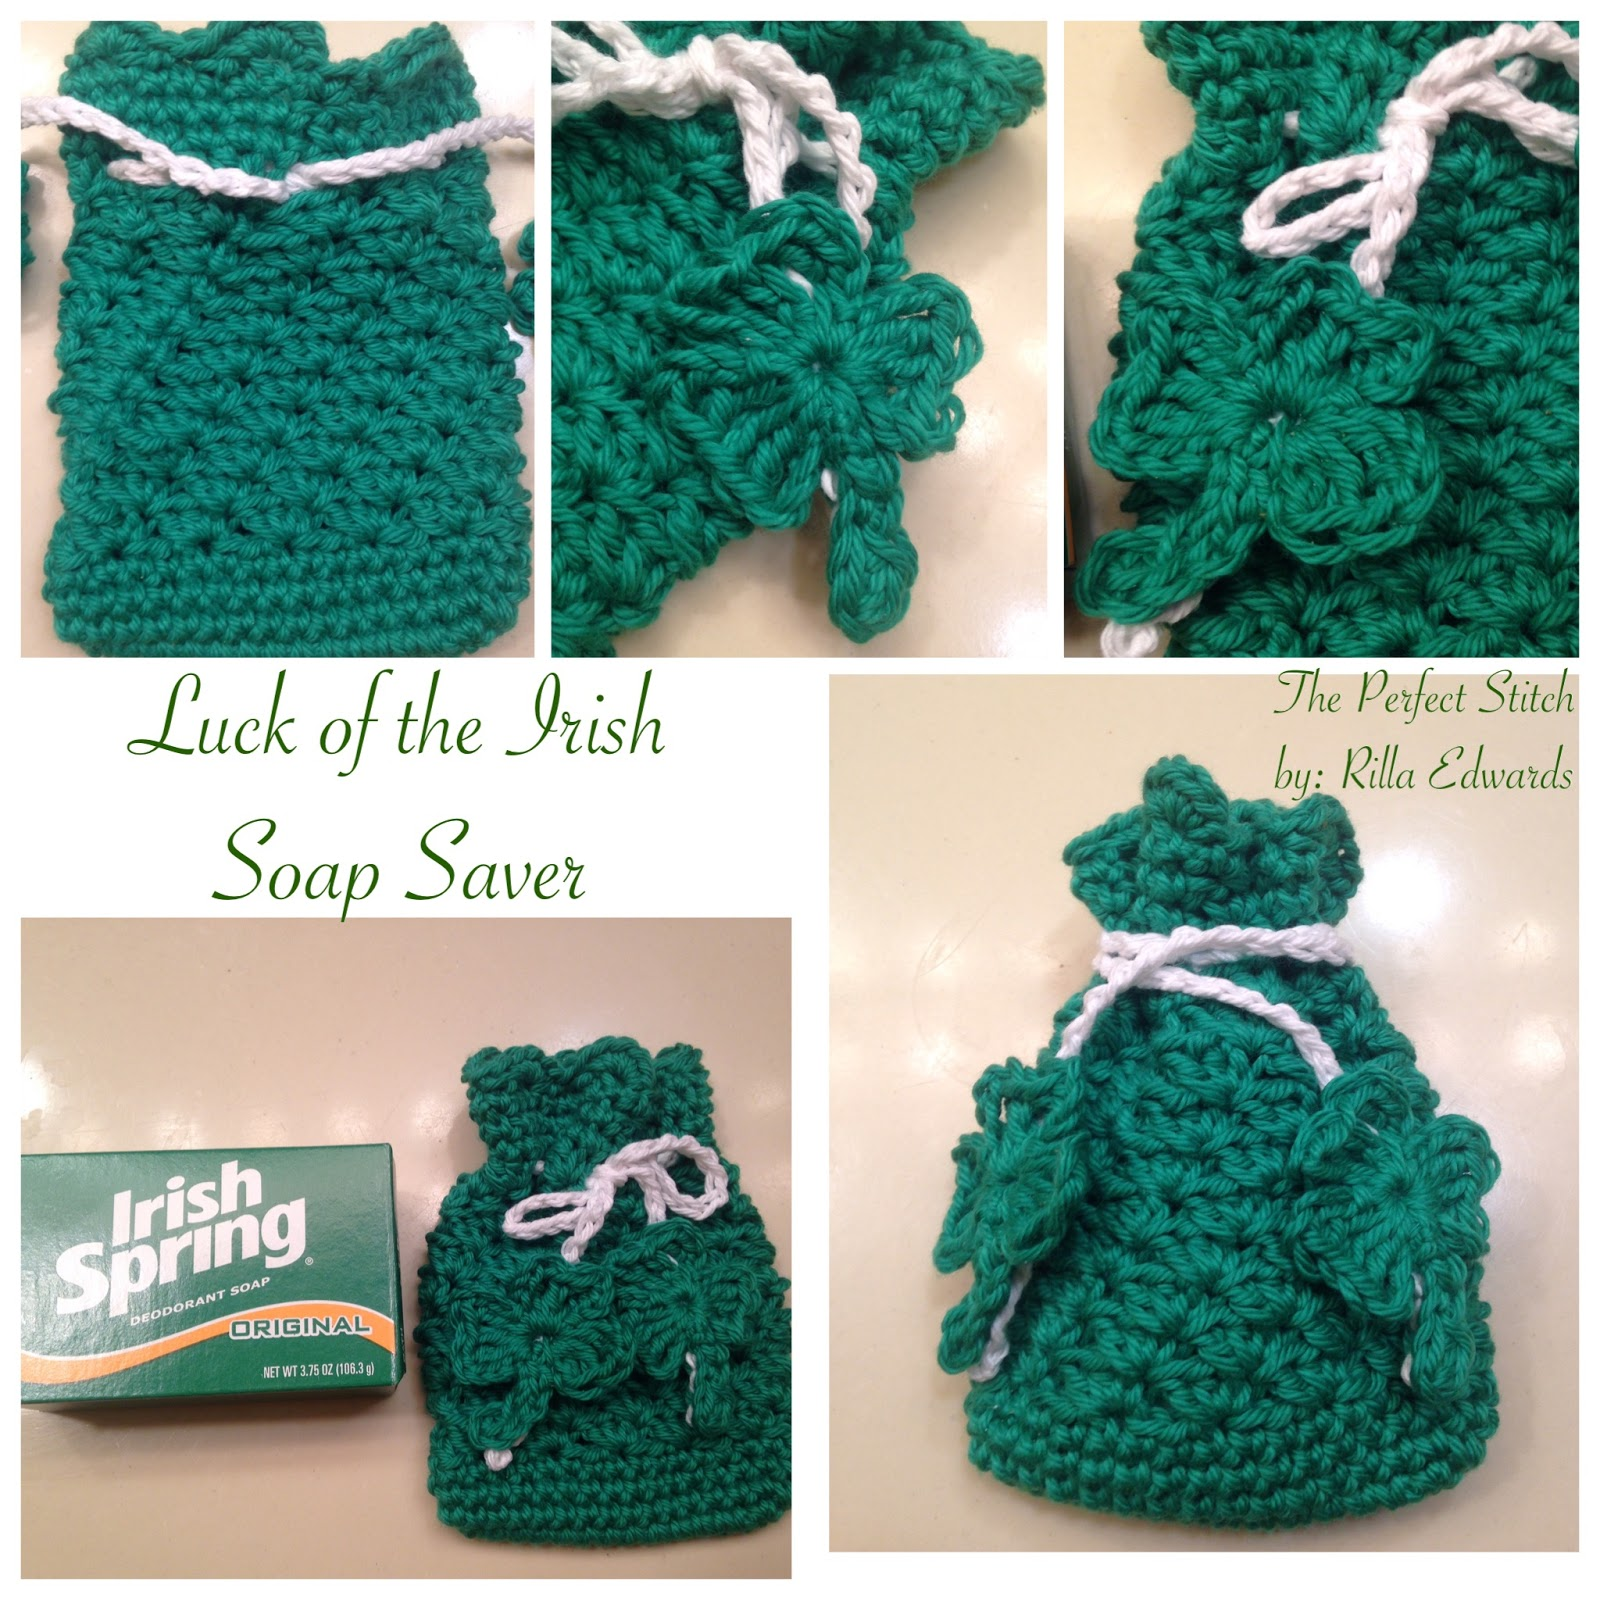 The Perfect Stitch...: Luck of the Irish Soap Saver...